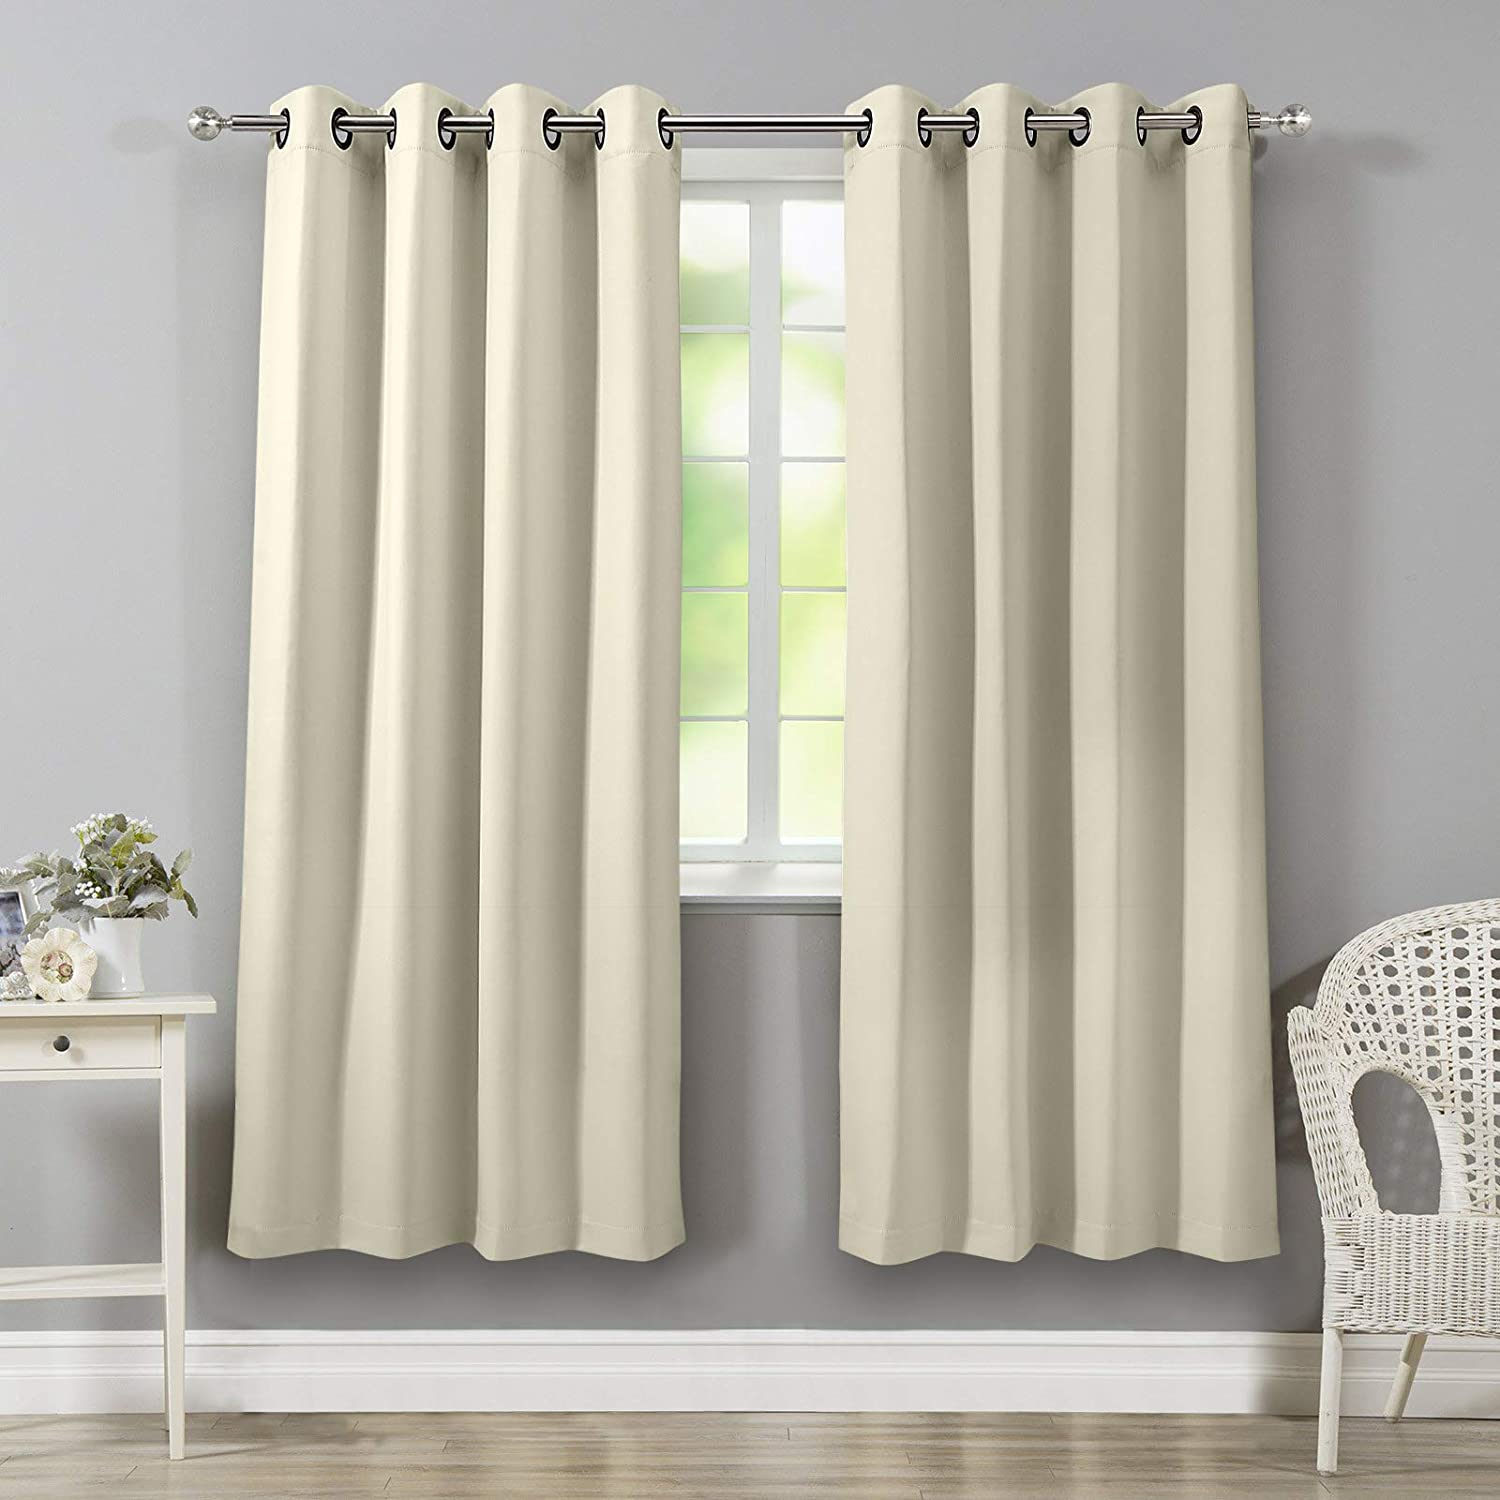 "VEEYOO Blackout Curtains Grommet Top Thermal Insulated Window Curtains and Drapes with Tiebacks for Kitchen, 2 Panels, 52"" W x 84"" L, Beige"